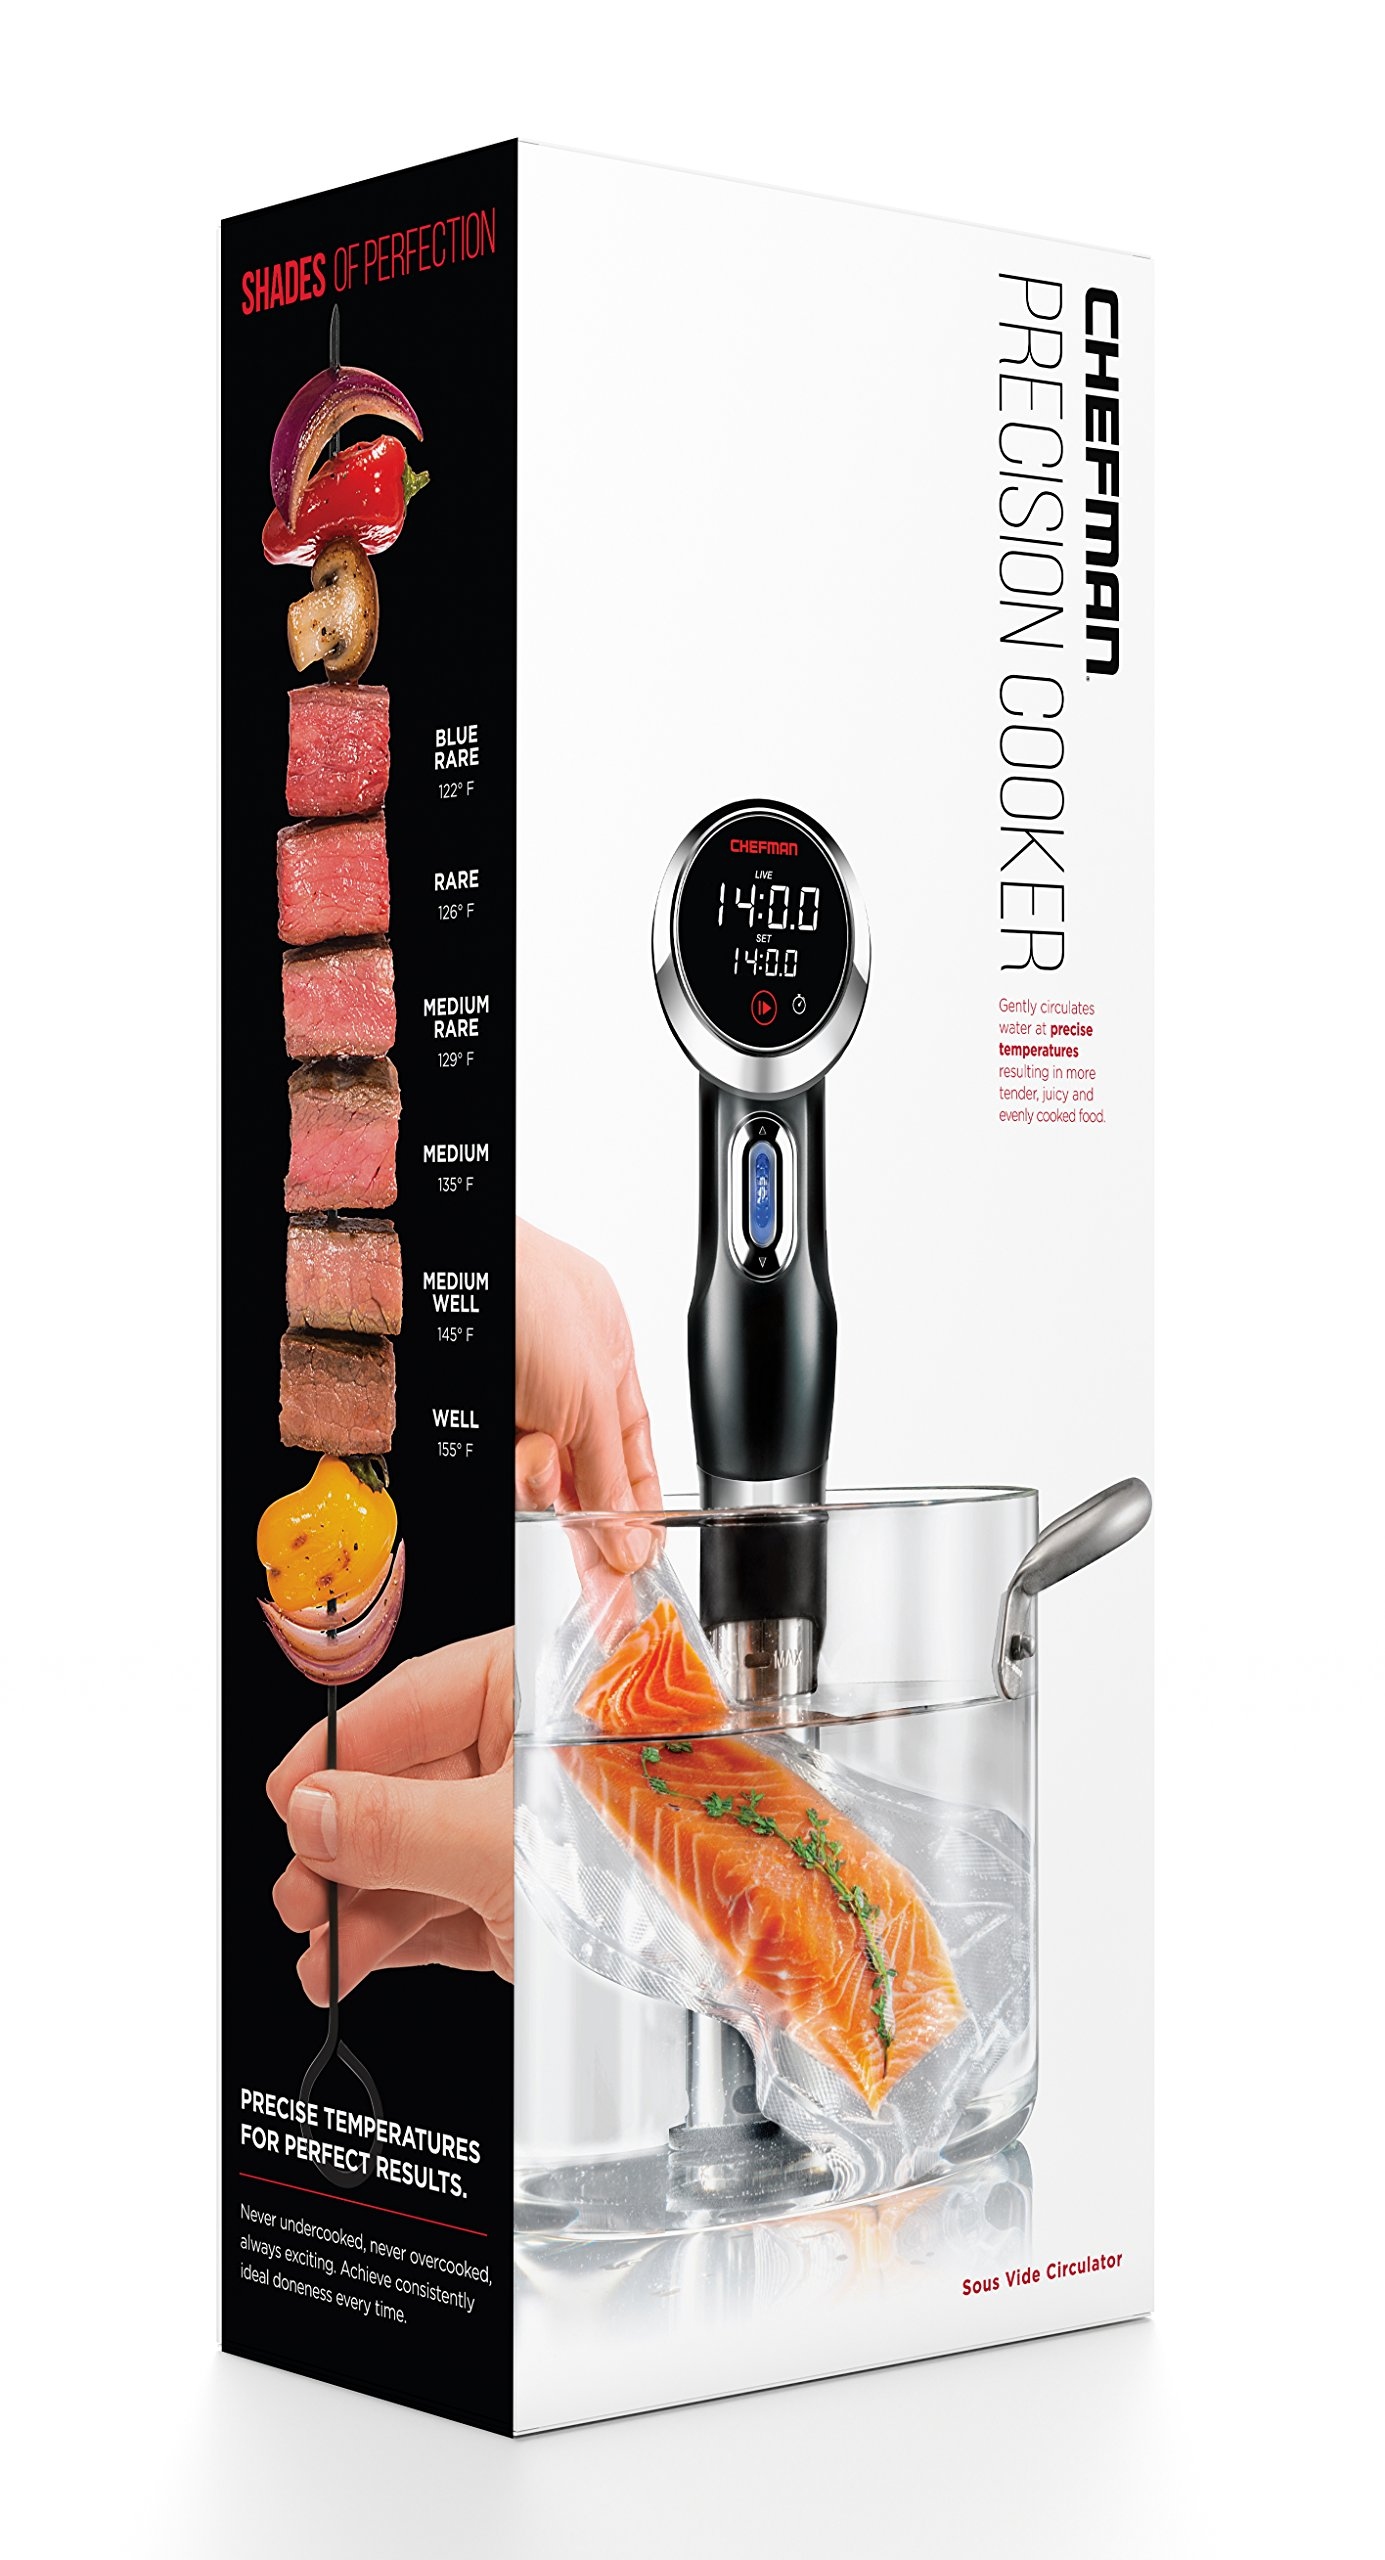 Chefman Sous Vide Immersion Circulator w/ Precise Temperature, Programmable Digital Touch Screen Display and Easy to Use Controls, Black by Chefman